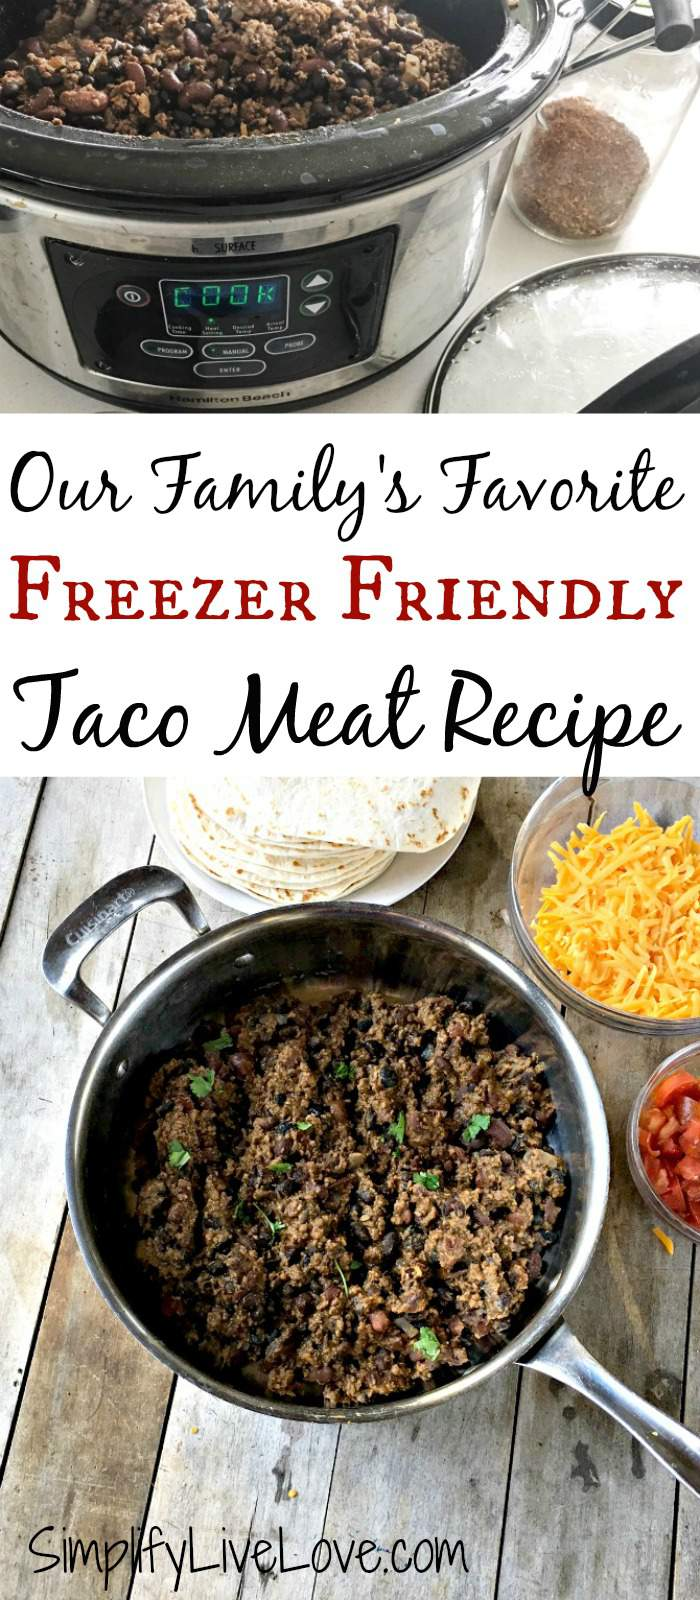 Our family's favorite taco meat recipe, made in large quantity because it's perfect for the freezer. This recipe features ground beef, homemade spice mix, and beans. Delicious!